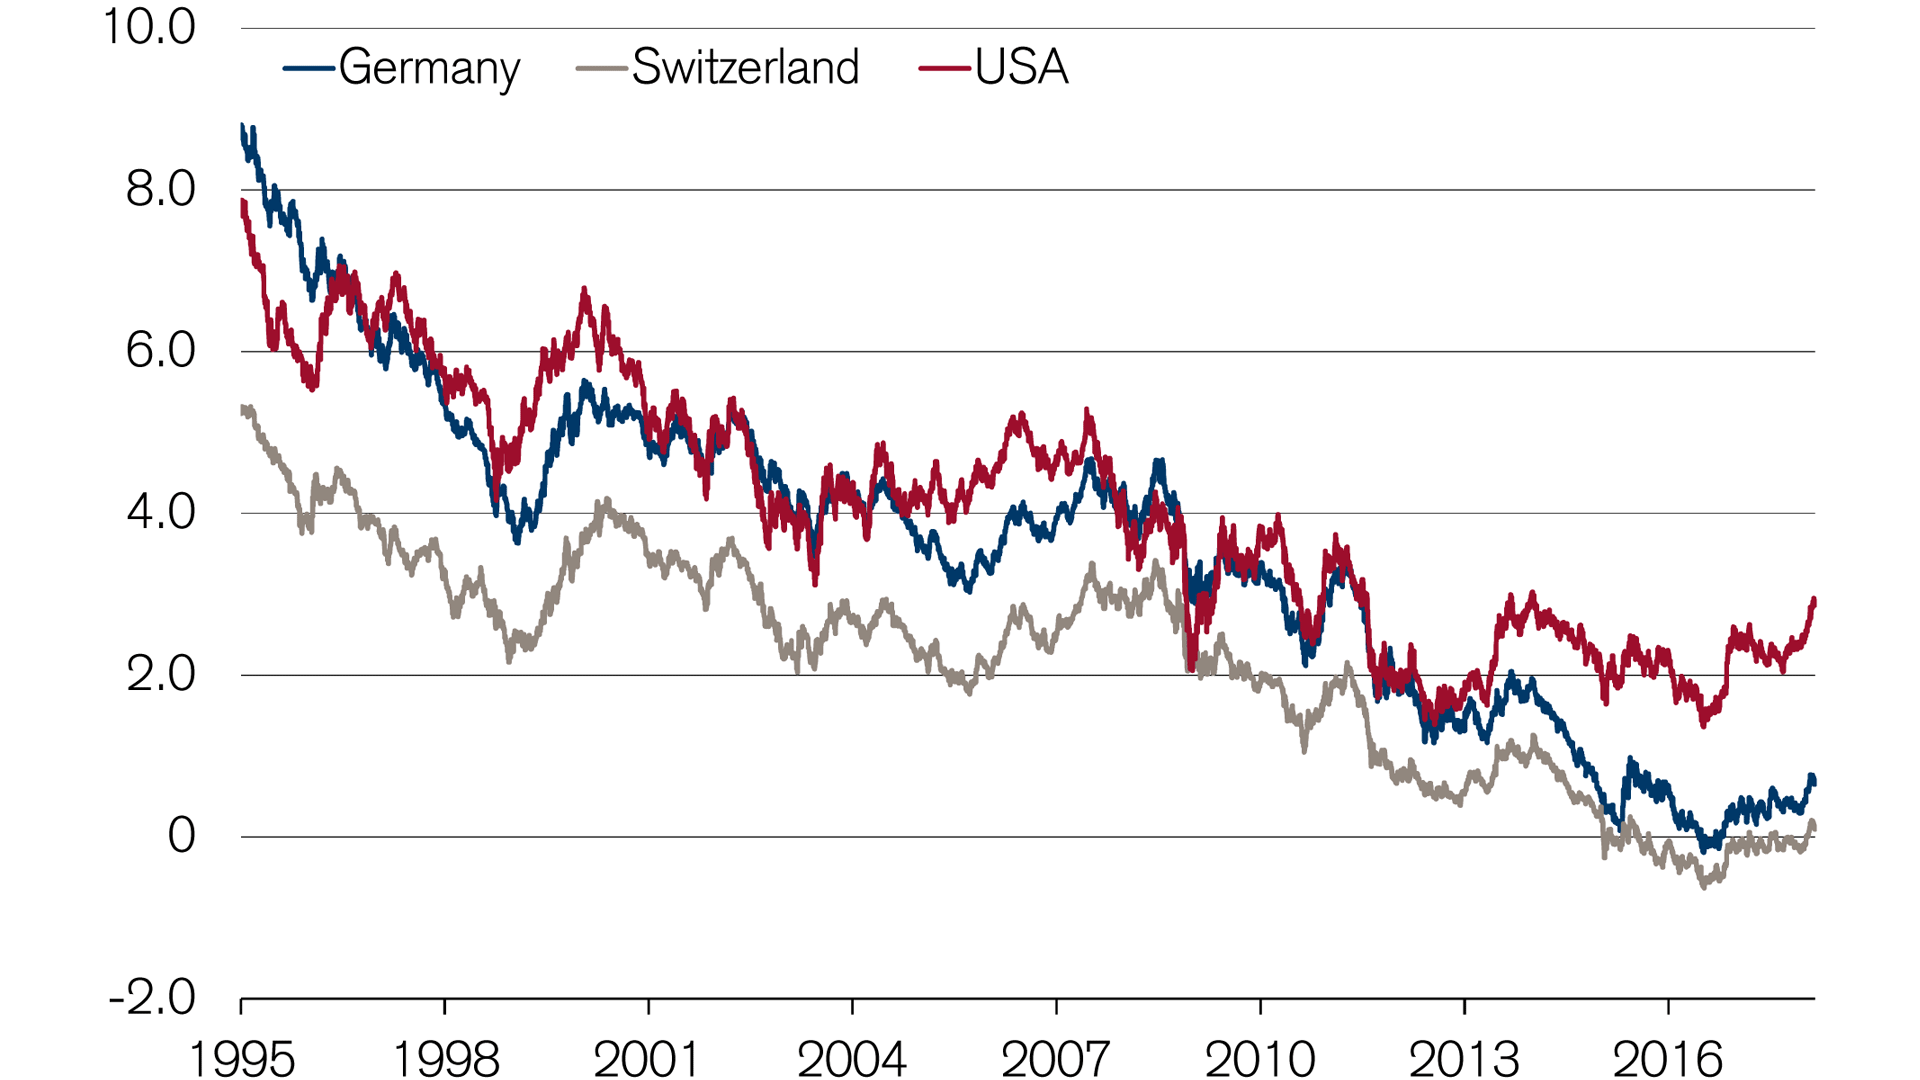 interest-rates-on-the-rise-again-in-switzerland